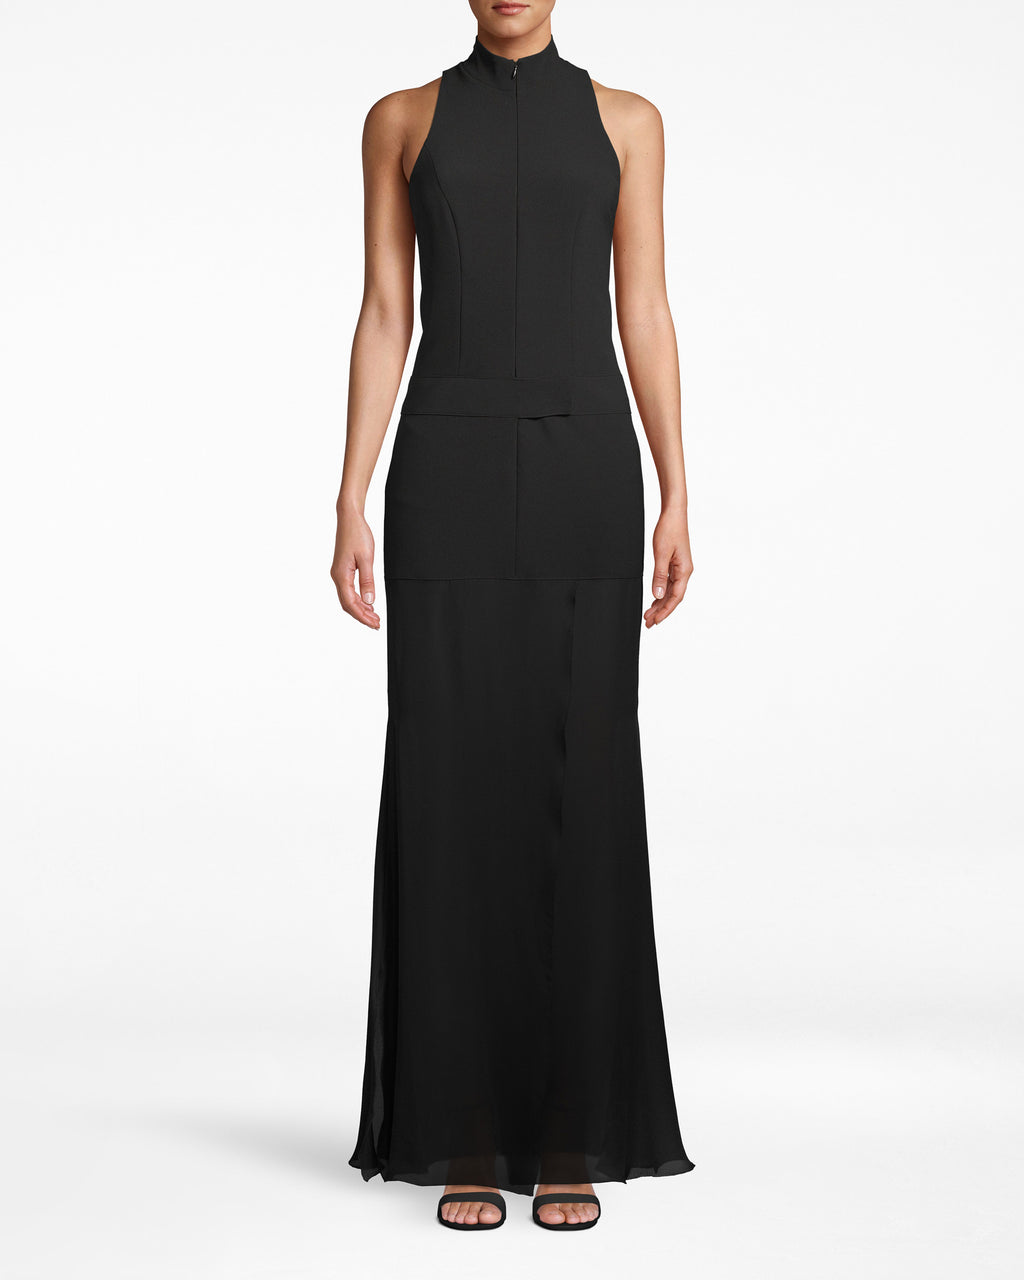 CF20076 - TECHY CREPE COMBO GOWN - dresses - long - Things just got interesting. Zip up the neck of this plunge gown to lengthen the silhouette, or zip down to show off skin - your choice. A belt-like waistline adds another dimension and the hem loosely fans out. Shift underneath.